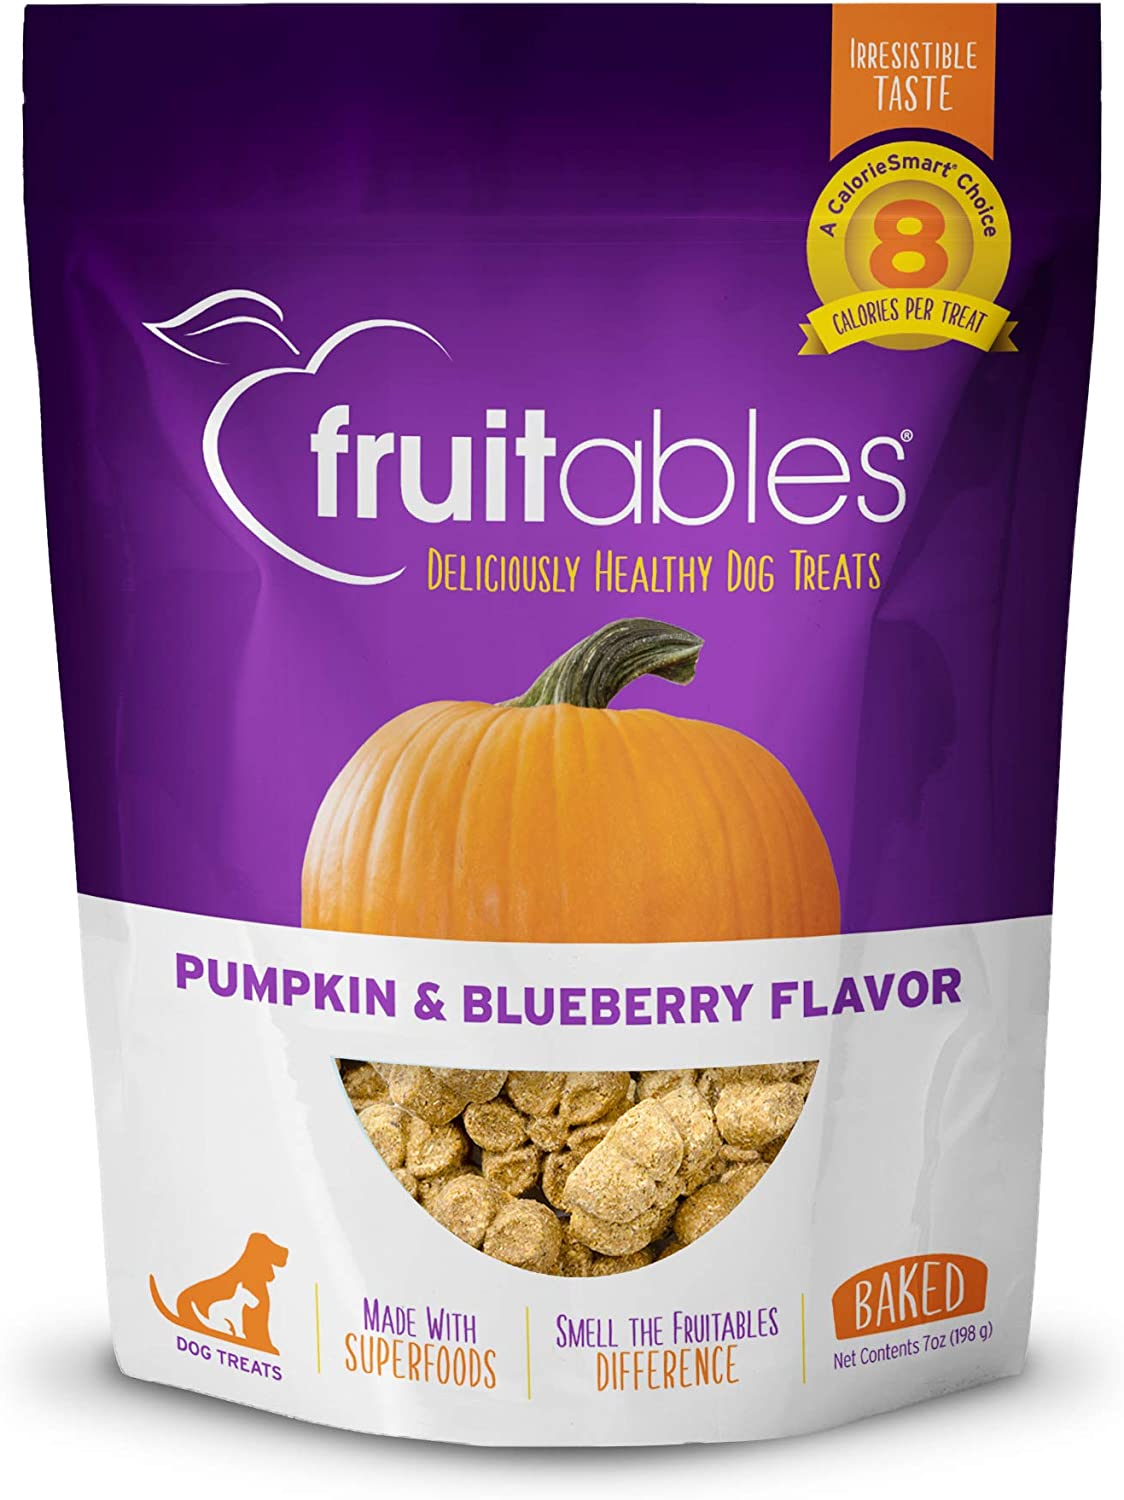 Fruitables Pumpkin & Blueberry Natural Dog Biscuits